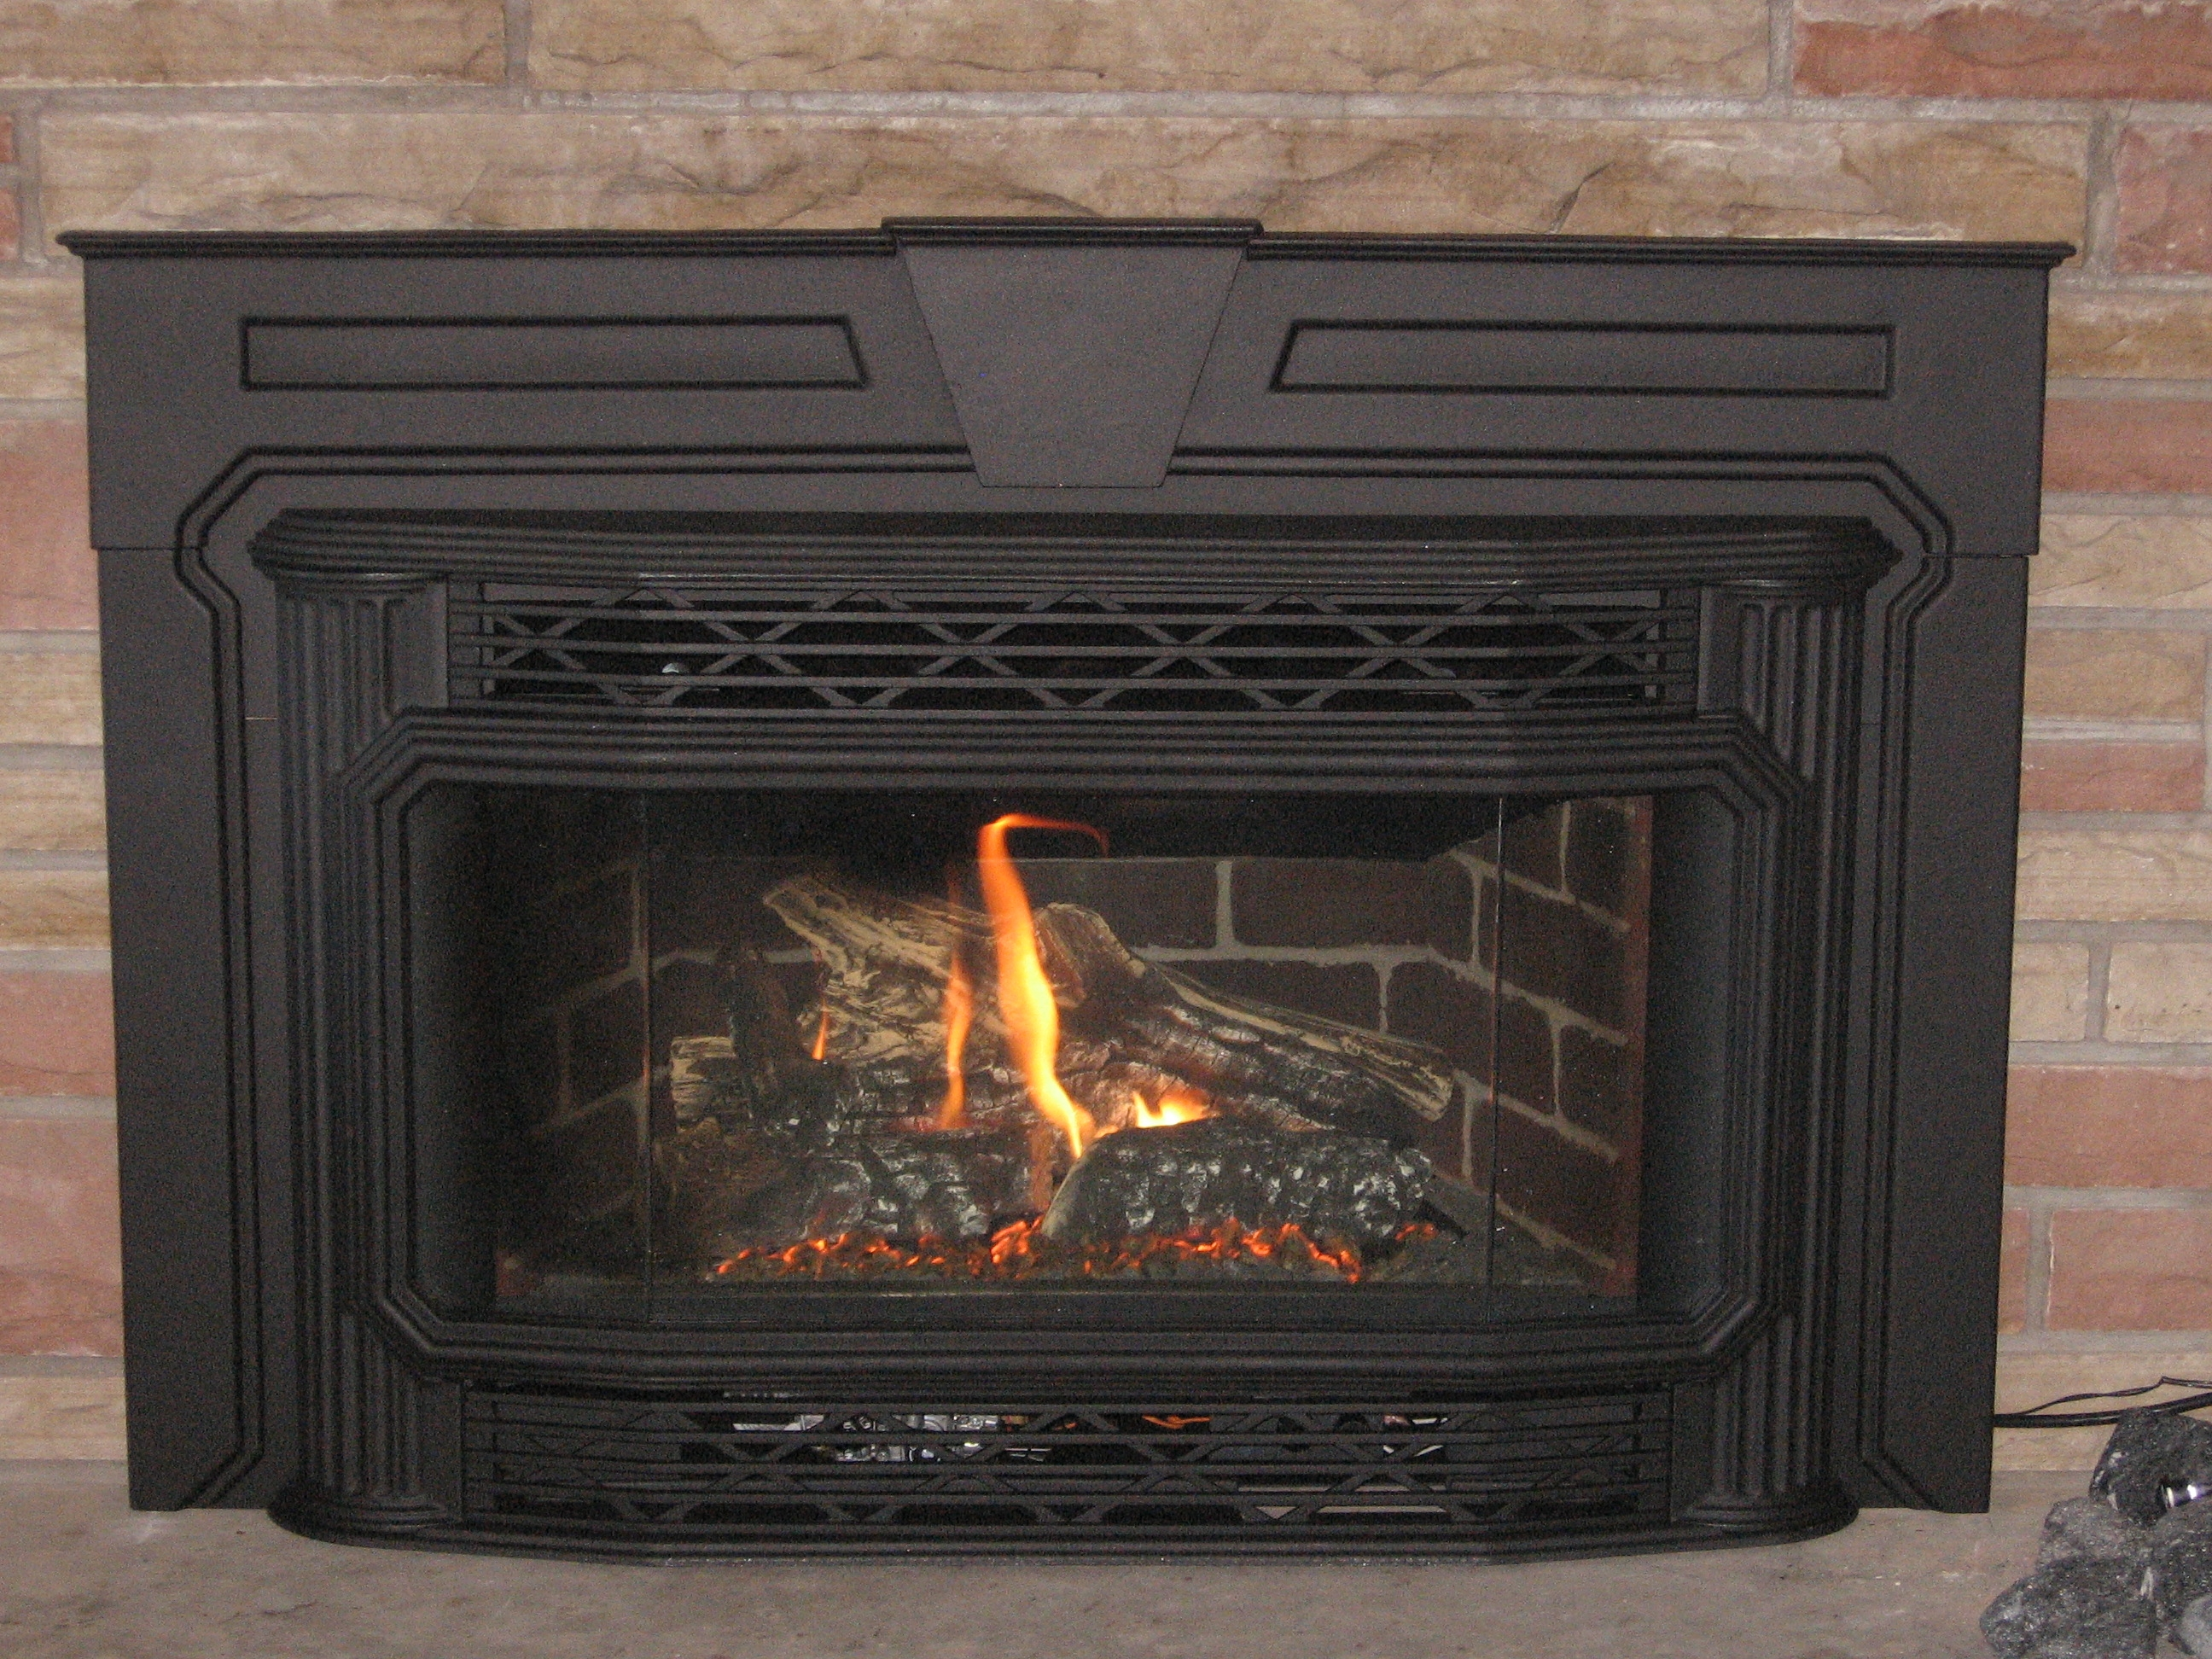 REPLACE GAS FIREPLACE WITH WOOD INSERT – Fireplaces